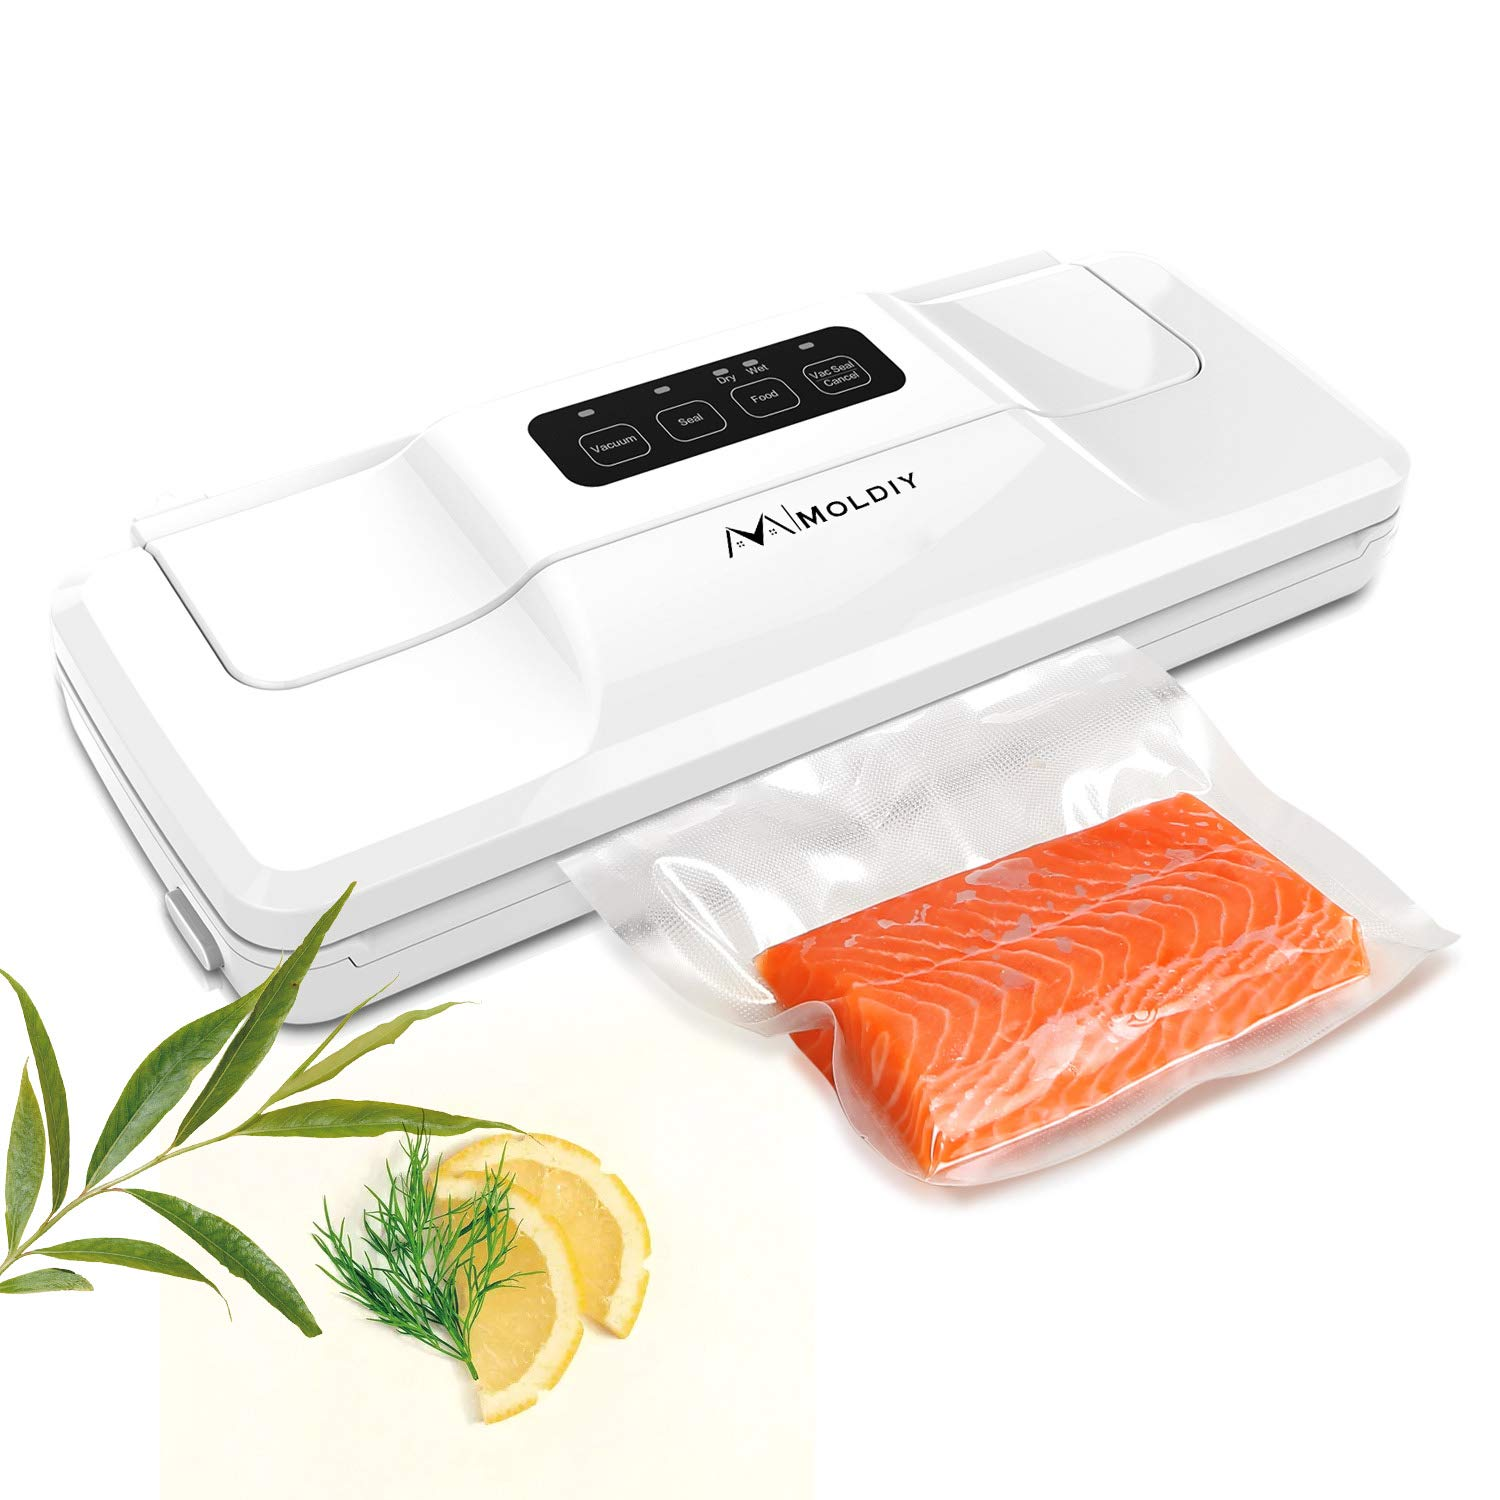 You can't beat this vacuum sealer for the price!